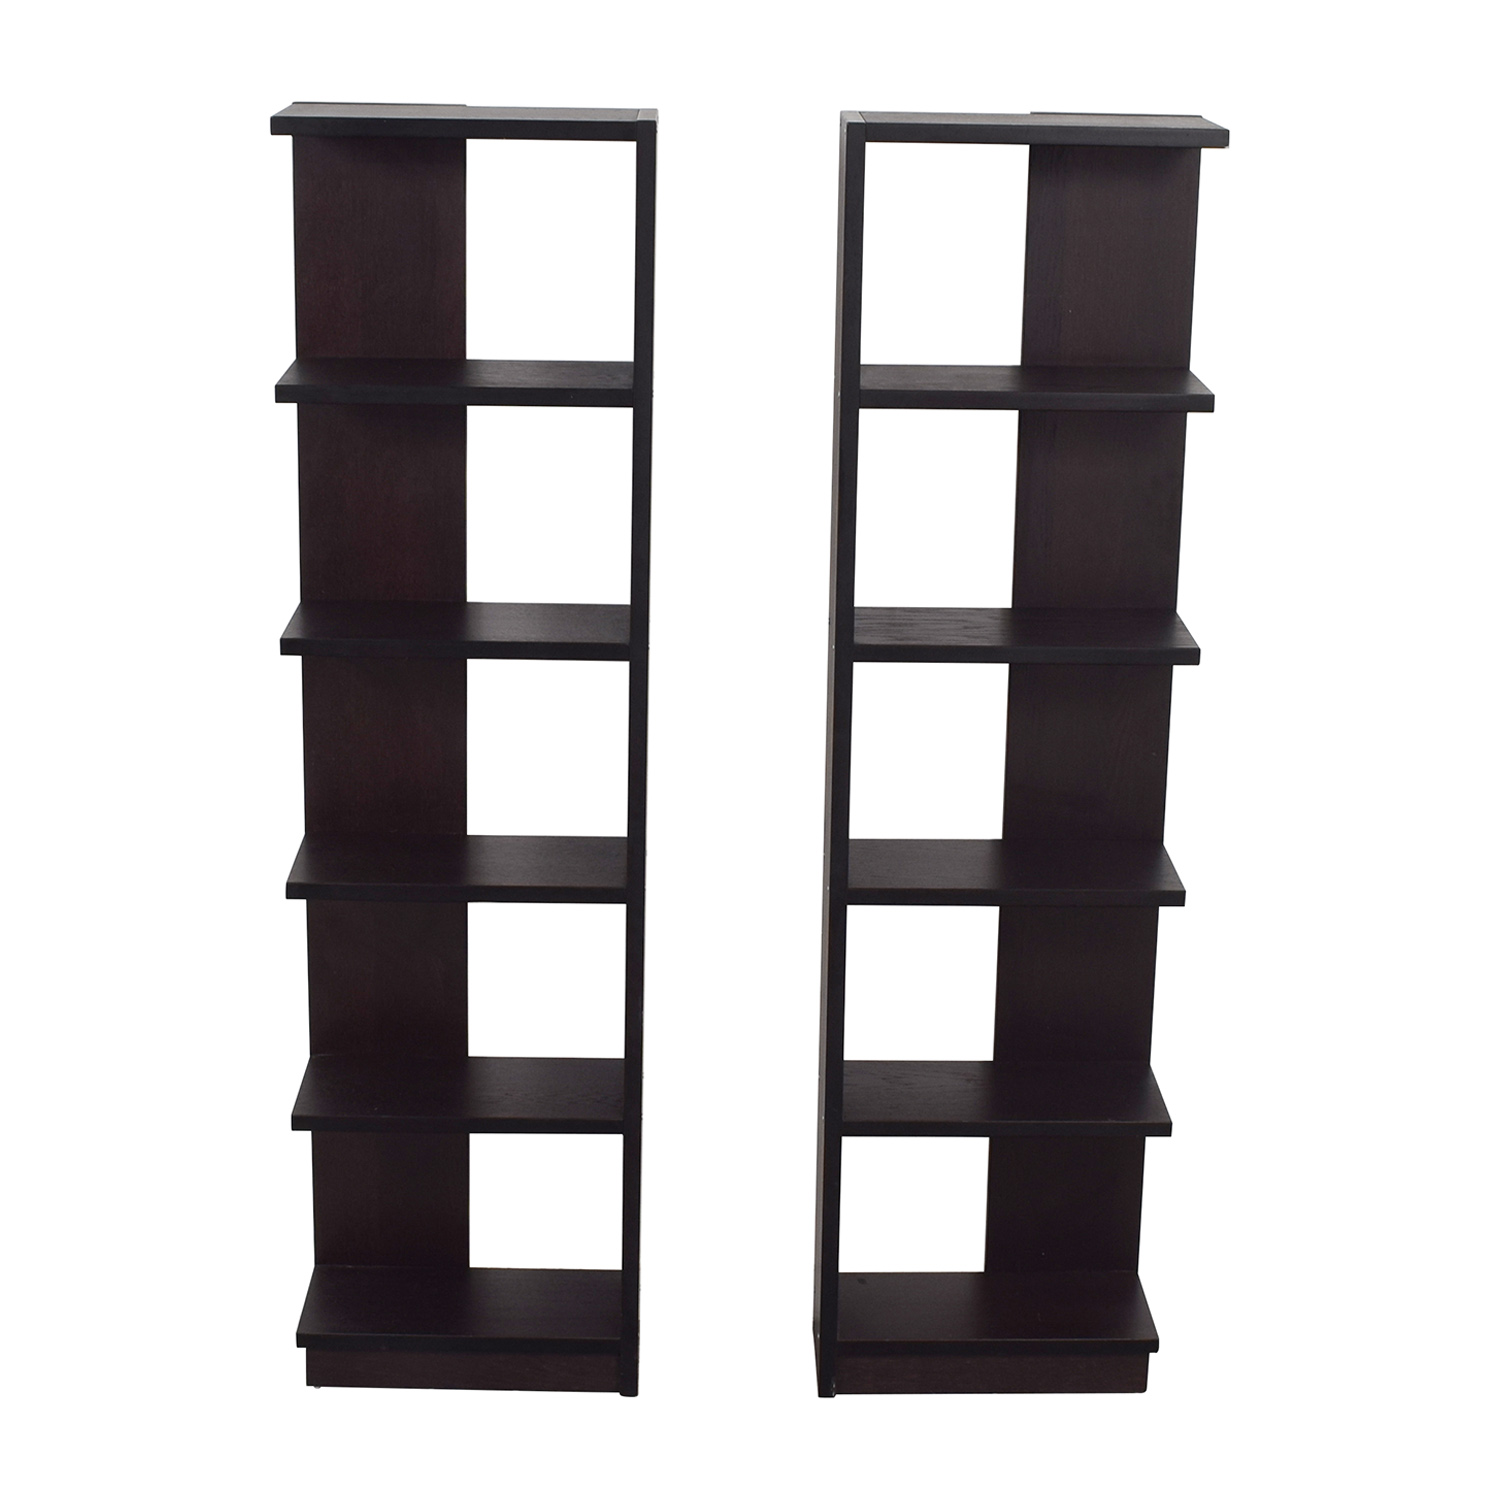 Crate & Barrel Crate & Barrel Elements Reversible Wood Bookcases second hand